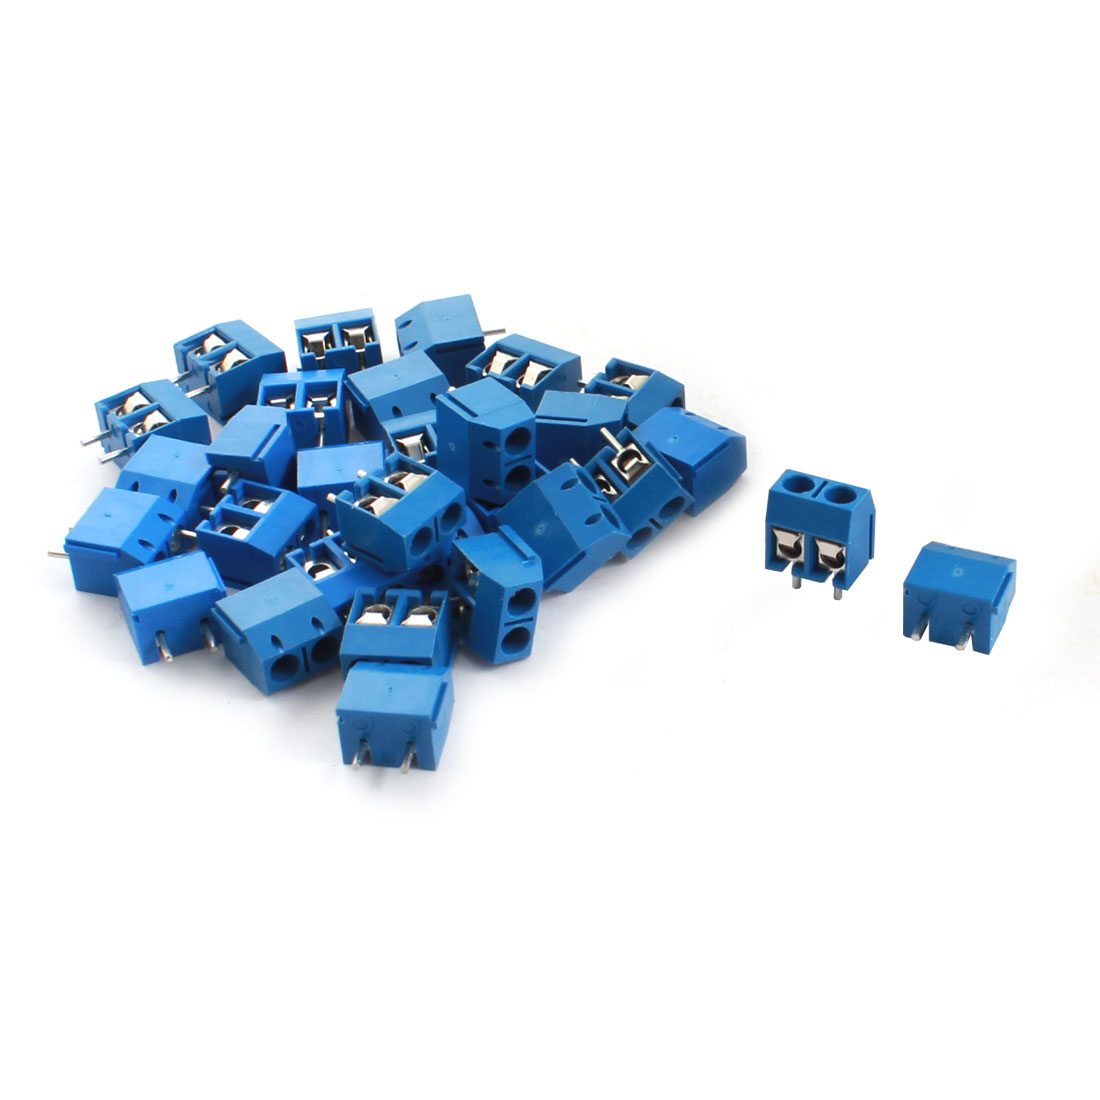 30Pcs 5.08mm Pitch 2 Position PCB Power Screw Terminal Block Connector Blue